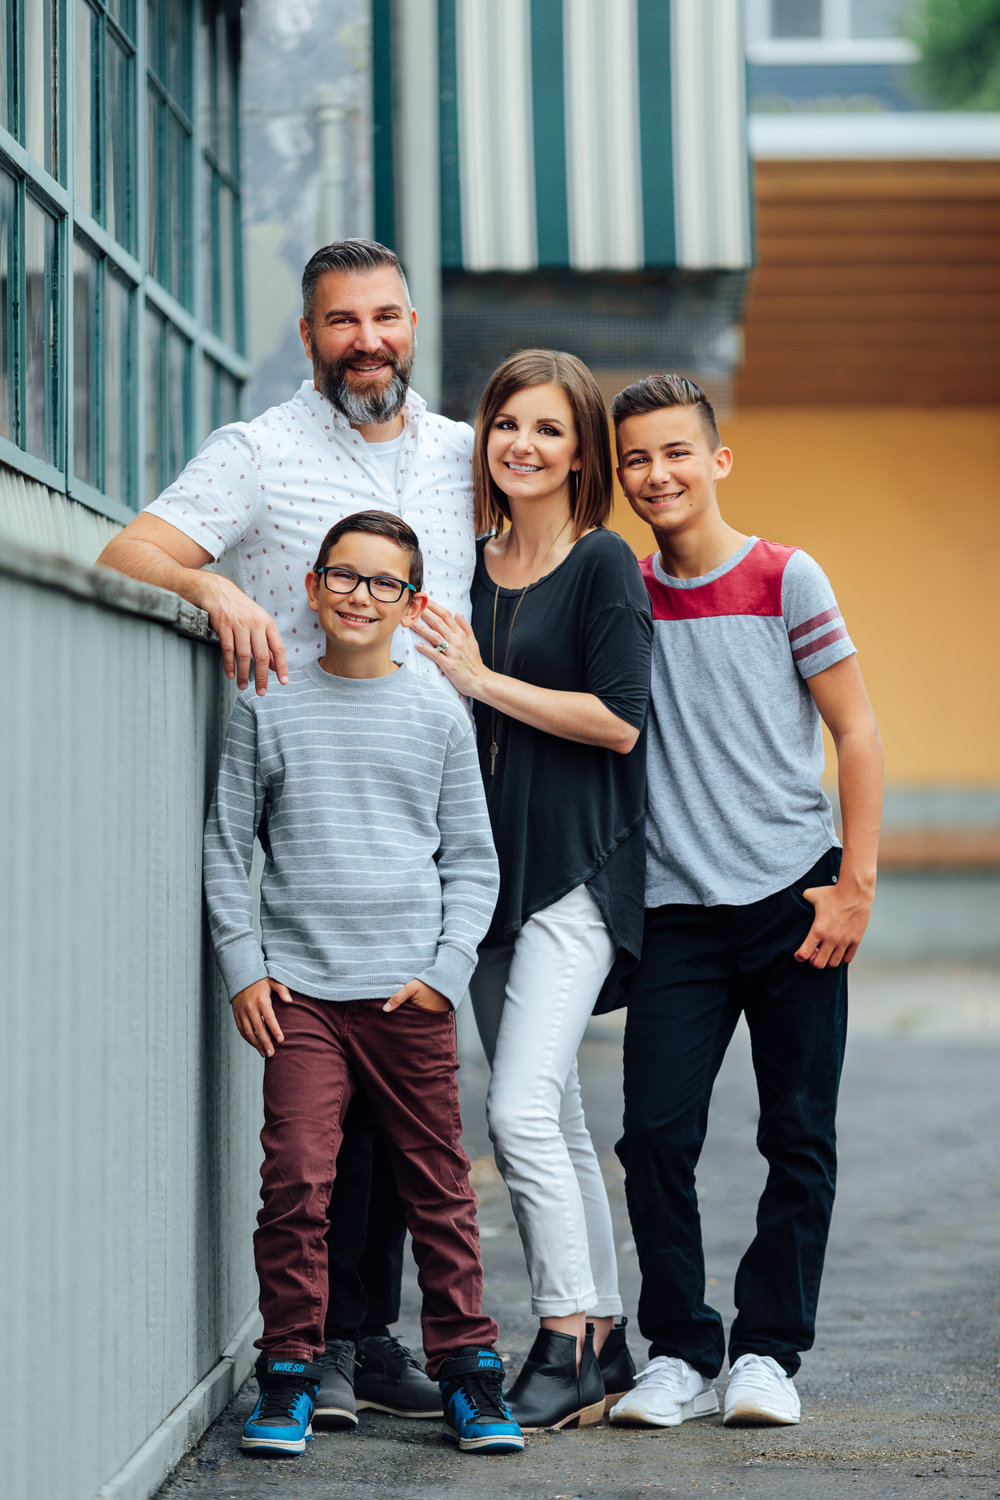 ariellanoellephotography-family-portraits-snohomish-washington-seattle-area-photographer-1-11.jpg